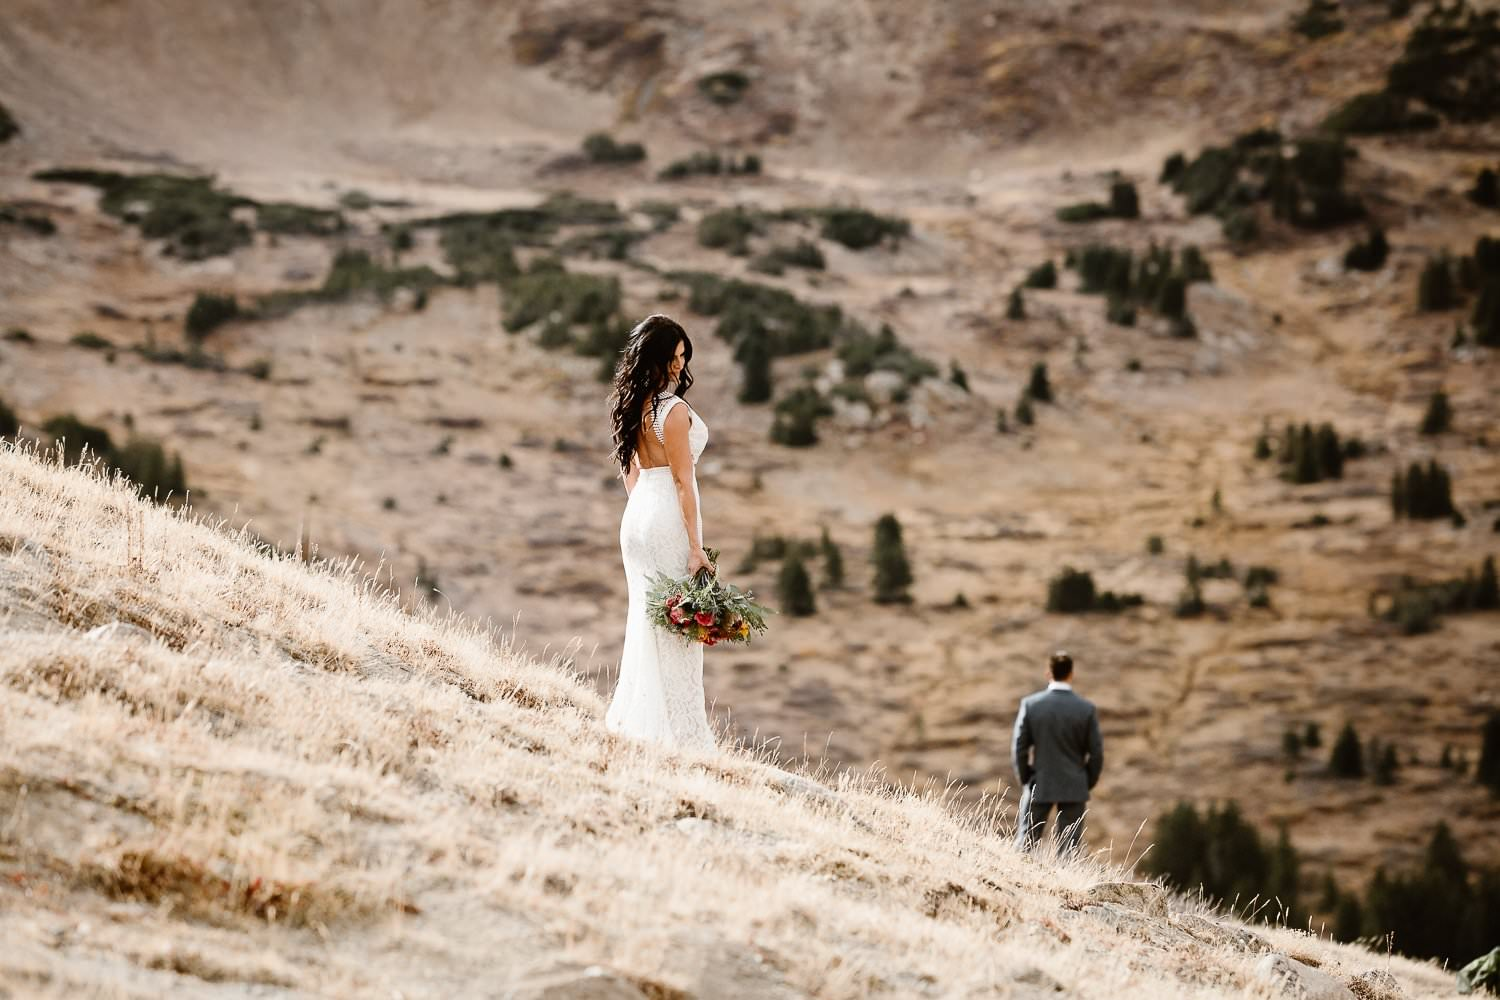 ANTHONY'S +CASEY ADVENTUROUS BRECKENRIDGE ELOPEMENT | SNOWY SUNSET FIRST LOOK AT LOVELAND PASS | INTIMATE WEDDING CEREMONY AT SAPPHIRE POINT | DESTINATION ELOPEMENT PHOTOGRAPHER COLORADO ADVENTURE PHOTOGRAPHY|COLORADO ELOPEMENT PHOTOGRAPHER|DESTINATION ADVENTURE ELOPEMENTS + INTIMATE WEDDINGS FOR MADLY IN LOVE SOULS| ROCKY MOUNTAIN NATIONAL PARK COLORADO ELOPEMENT PHOTOGRAPHER